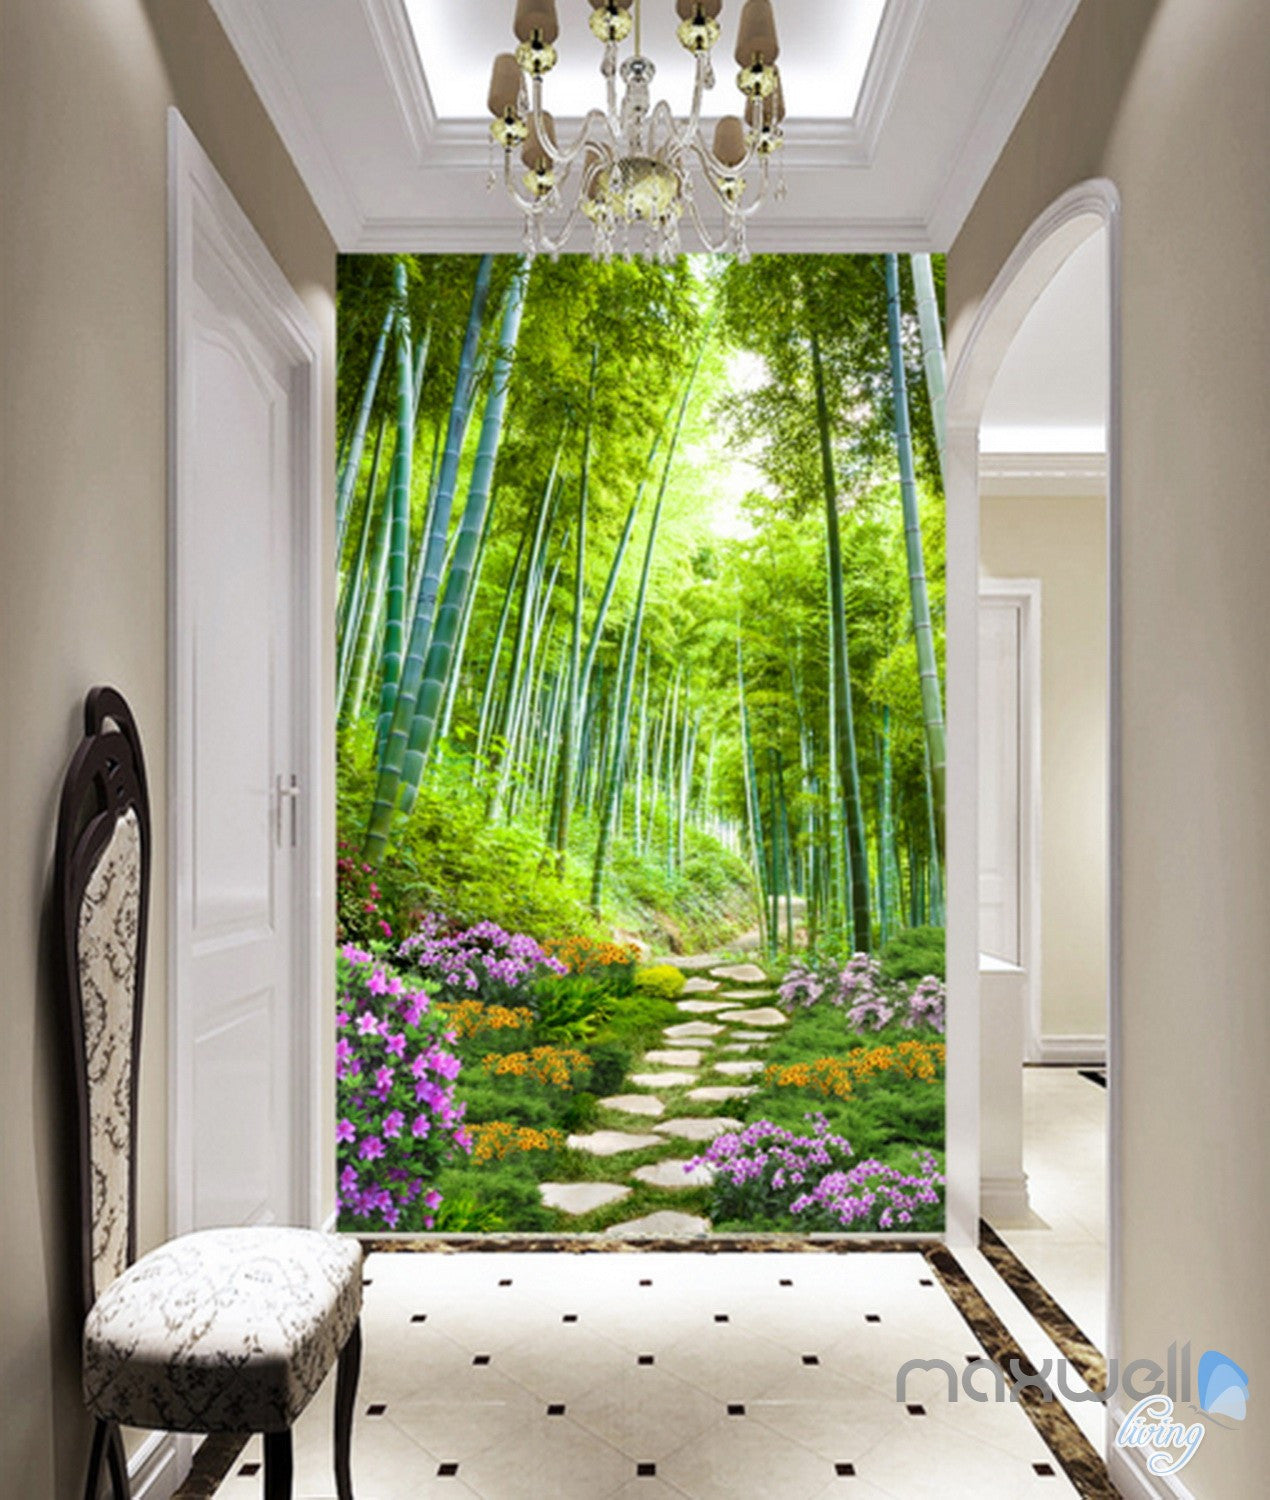 Attirant 3D Bamboo Forest Flower Corridor Entrance Wall Mural Decals Art Print  Wallpaper 047